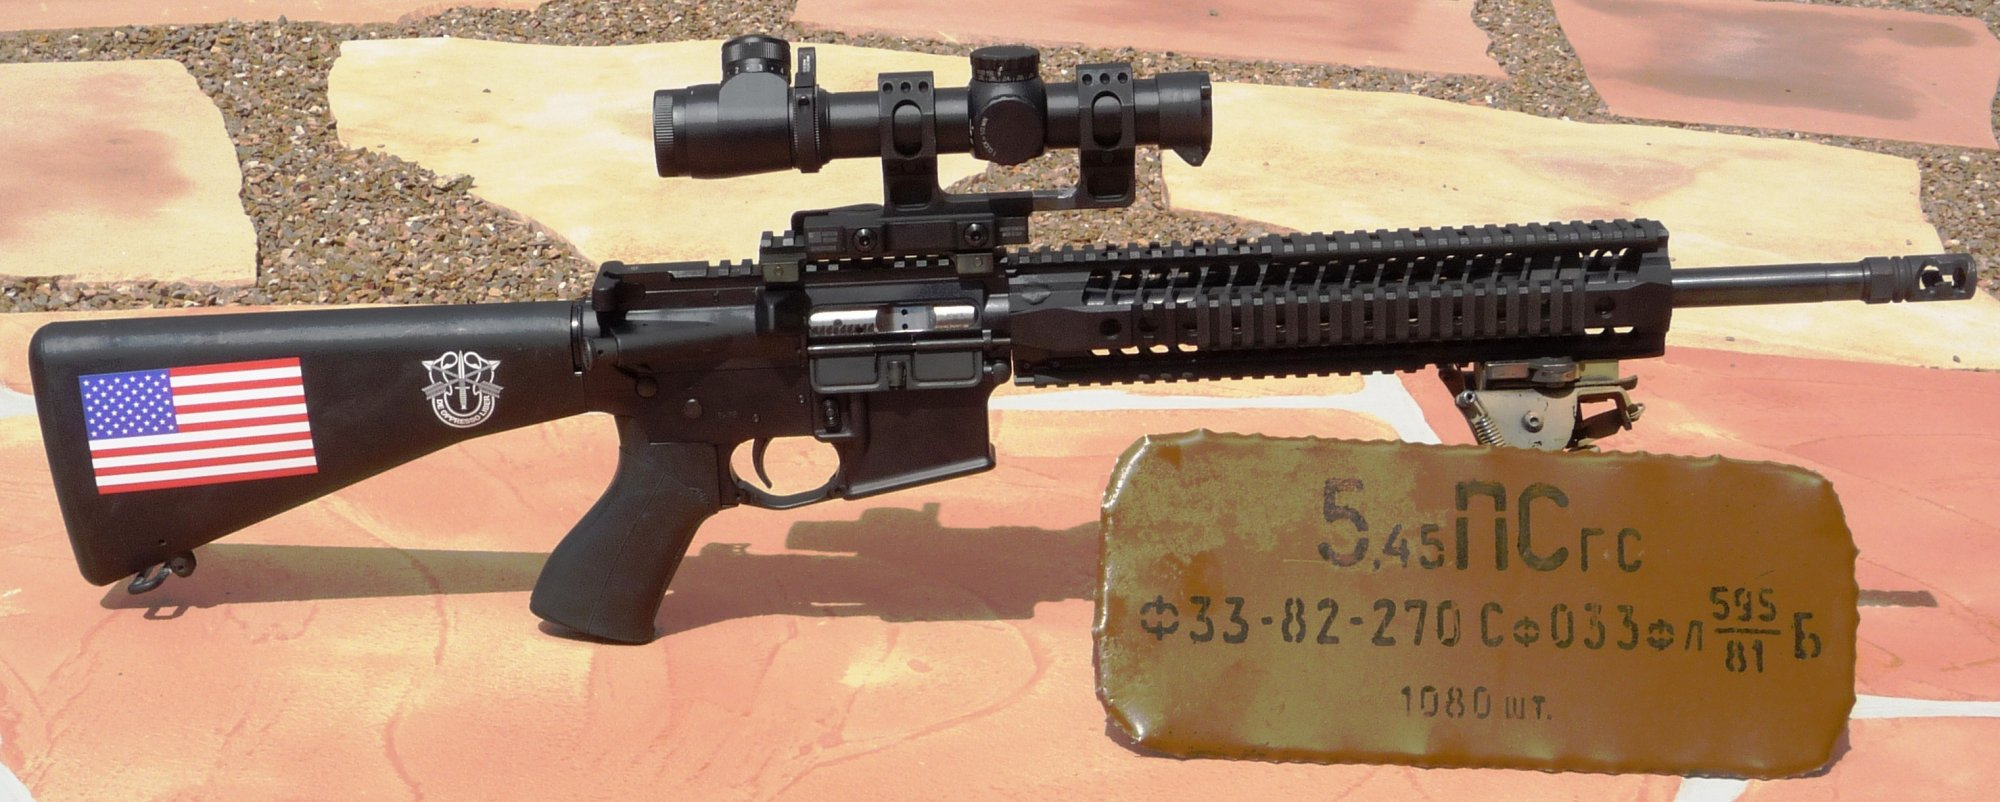 Mike_Pannone_Target_Spike's_Tactical_5.45mm_Russian_AR_Carbine_Upper_Receiver_1